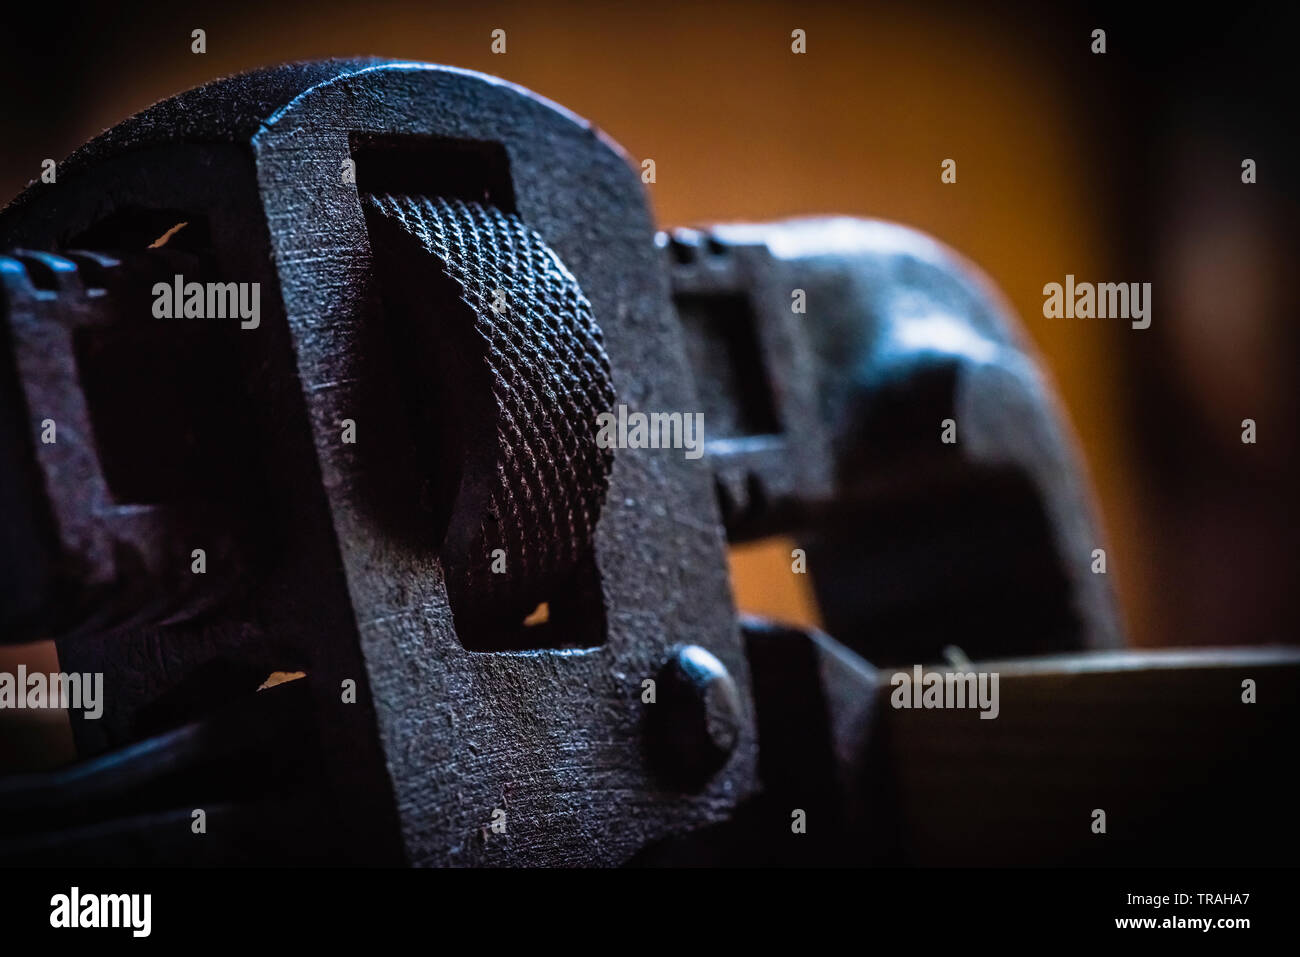 Concept view of stained pipe wrench hand tool in isolated background - Stock Image